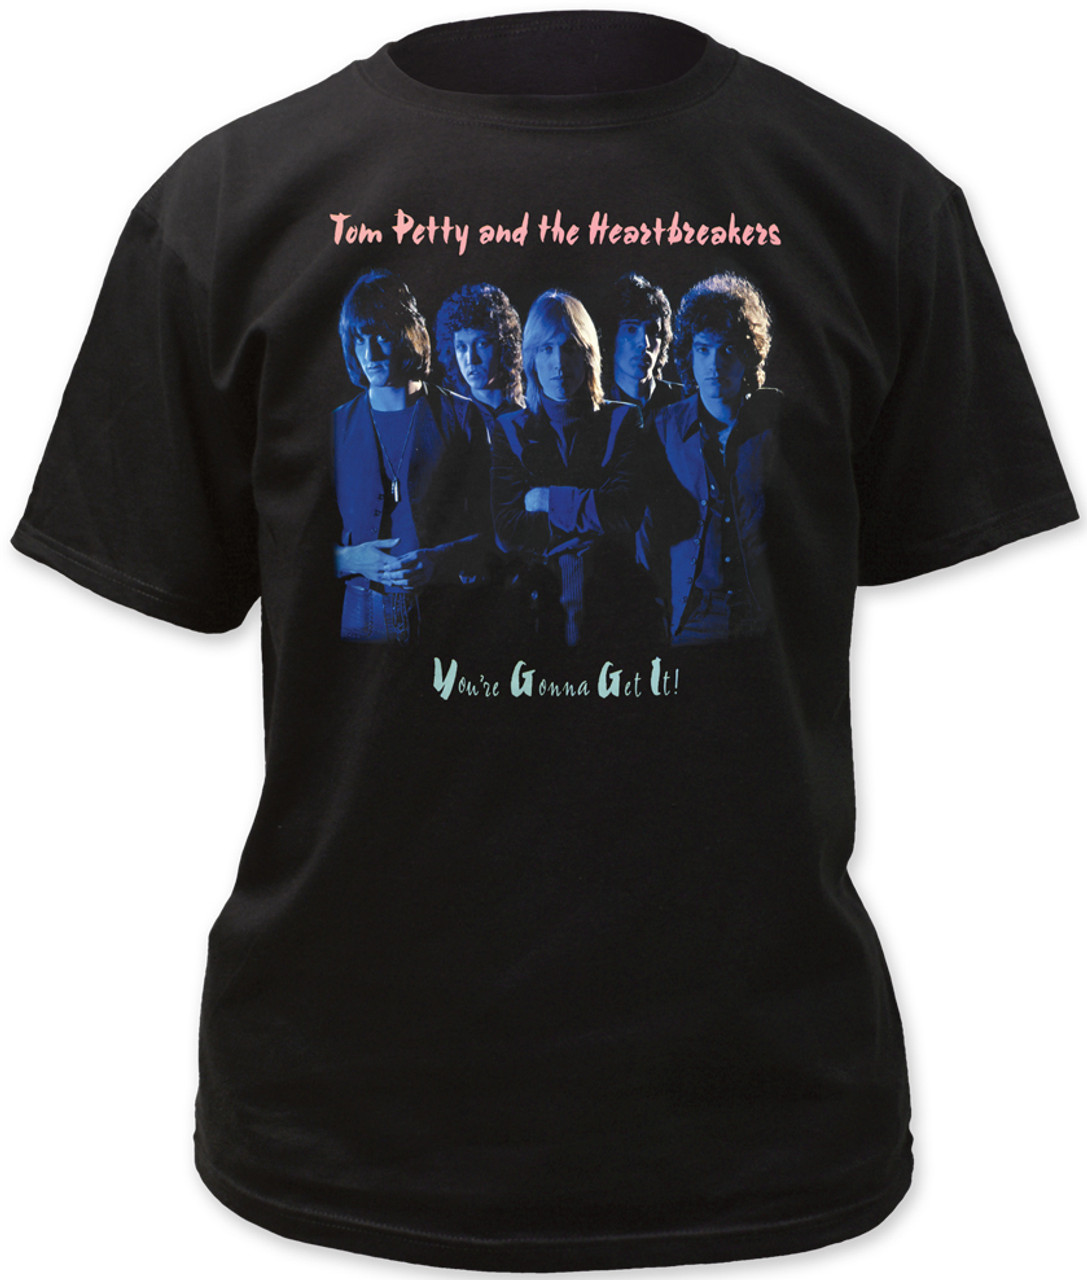 You/'re Gonna Get It Men/'s T-shirt Tom Petty and the Heartbreakers BRAND NEW